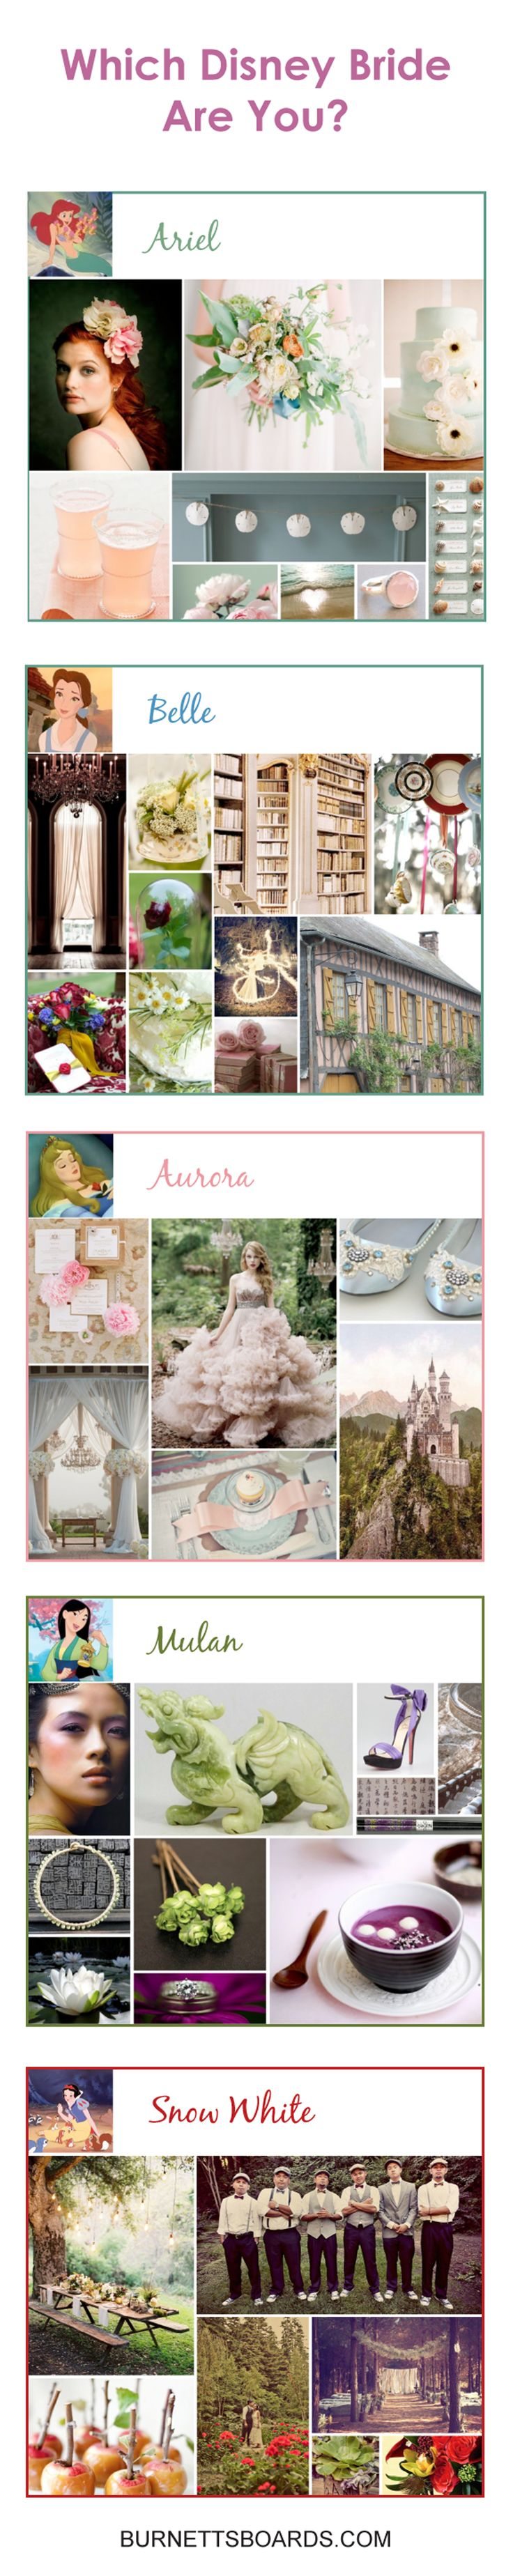 @Etna Medina Which #Disney #Princess #Bride are you? Surprise surprise i am an aurora bride and i still hate pocahontas. Take the poll and see the rest of these beautiful Disney inspired wedding boards at www.burnettsboards.com